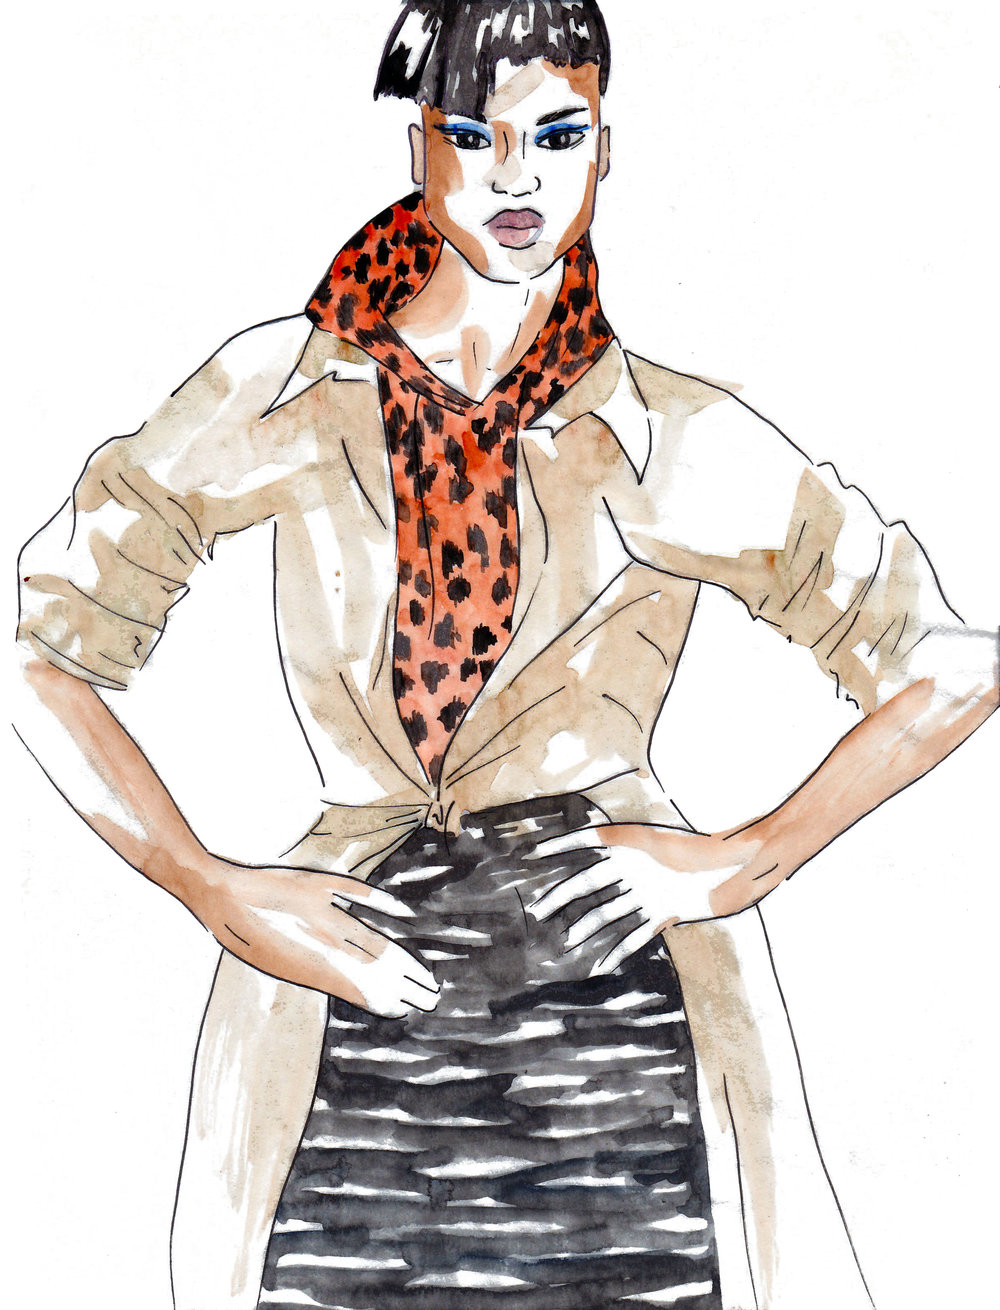 ashleychase fashionillustration watercolor.jpg